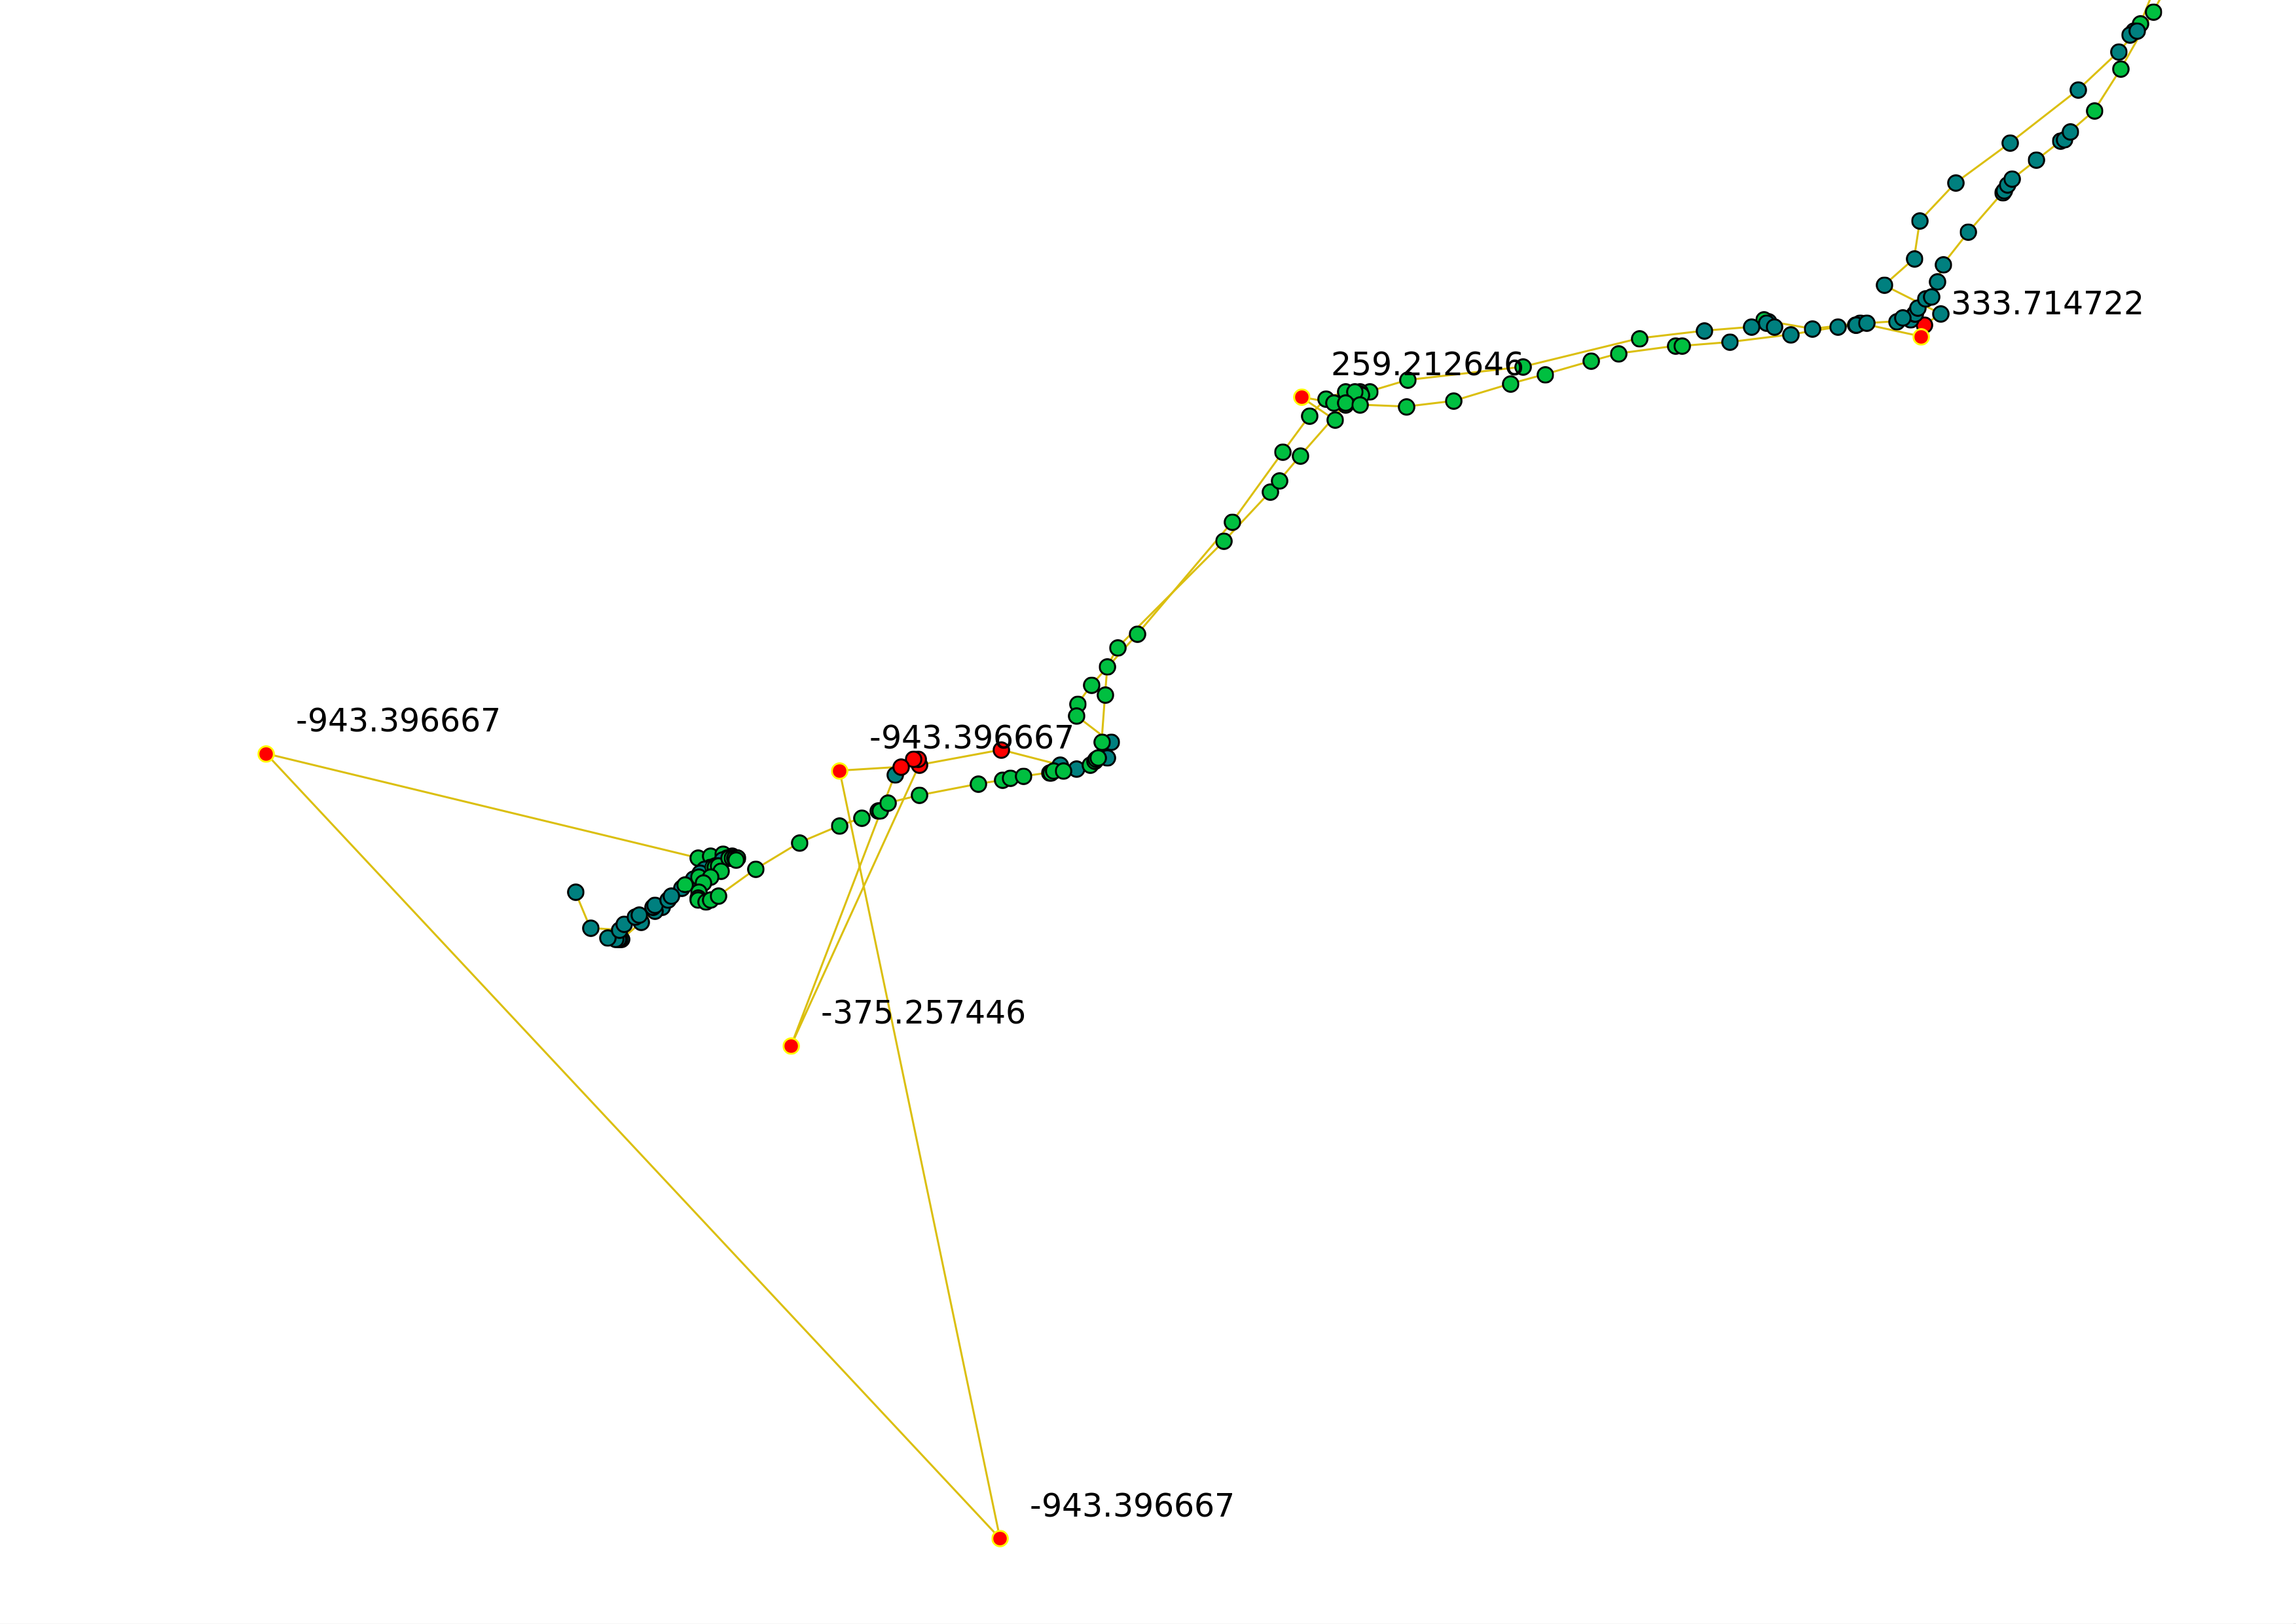 Qgis output of recent GPX tracks (Berlin) showing errant trackpoints